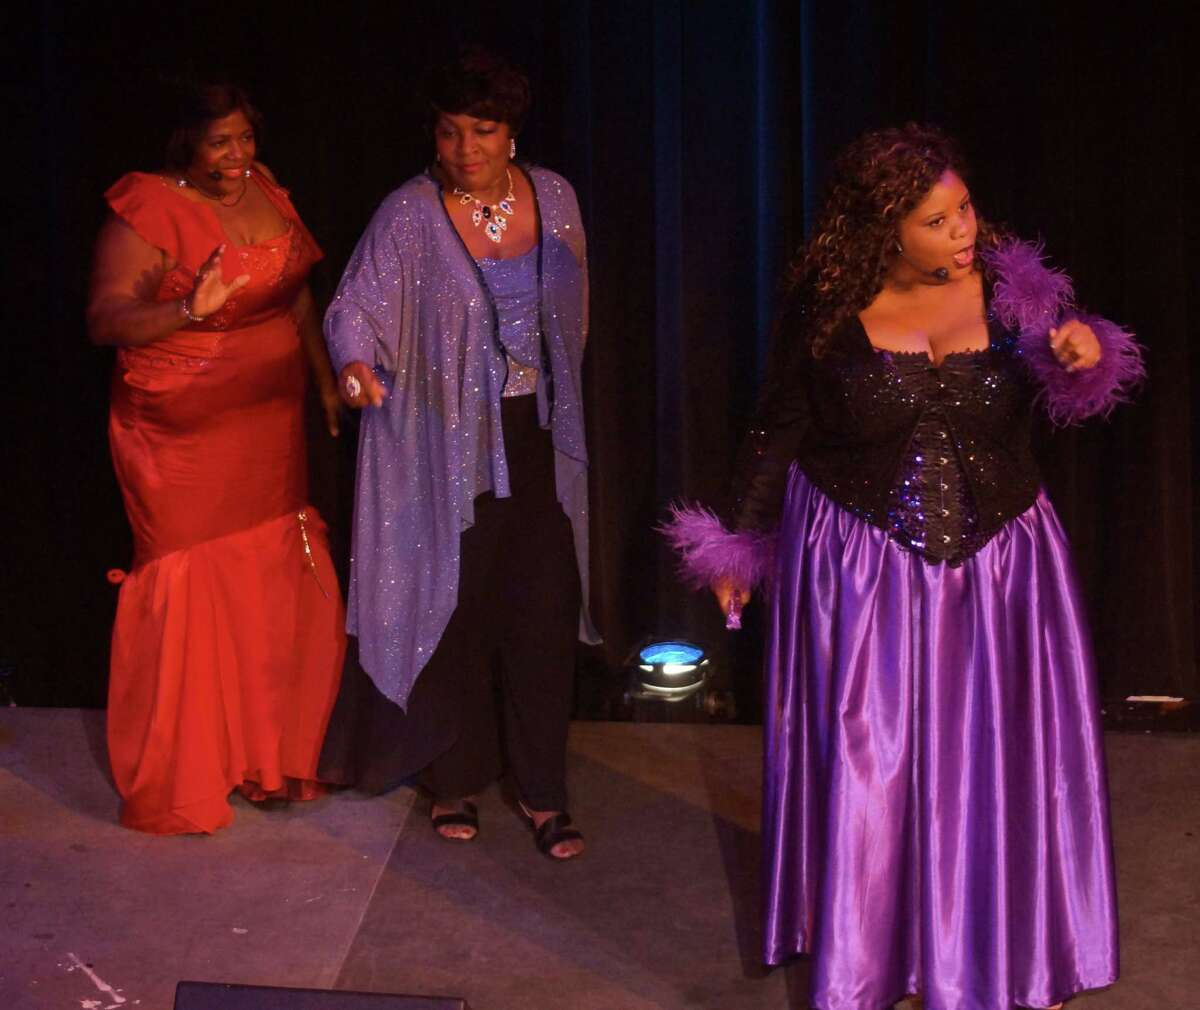 Consider yourselves warned: Tickets are going fast for the second-go-round for the Renaissance Guild's stellar musical revue, a rousing look at San Antonio's role on the Chitlin' Circuit, a segregation-era network of clubs for African American entertainers and audiences. 8 p.m. March 4-5 and 4 p.m. March 6, Little Carver Civic Center, 226 N. Hackberry. $12 to $24 plus fees at ticketmaster.com.